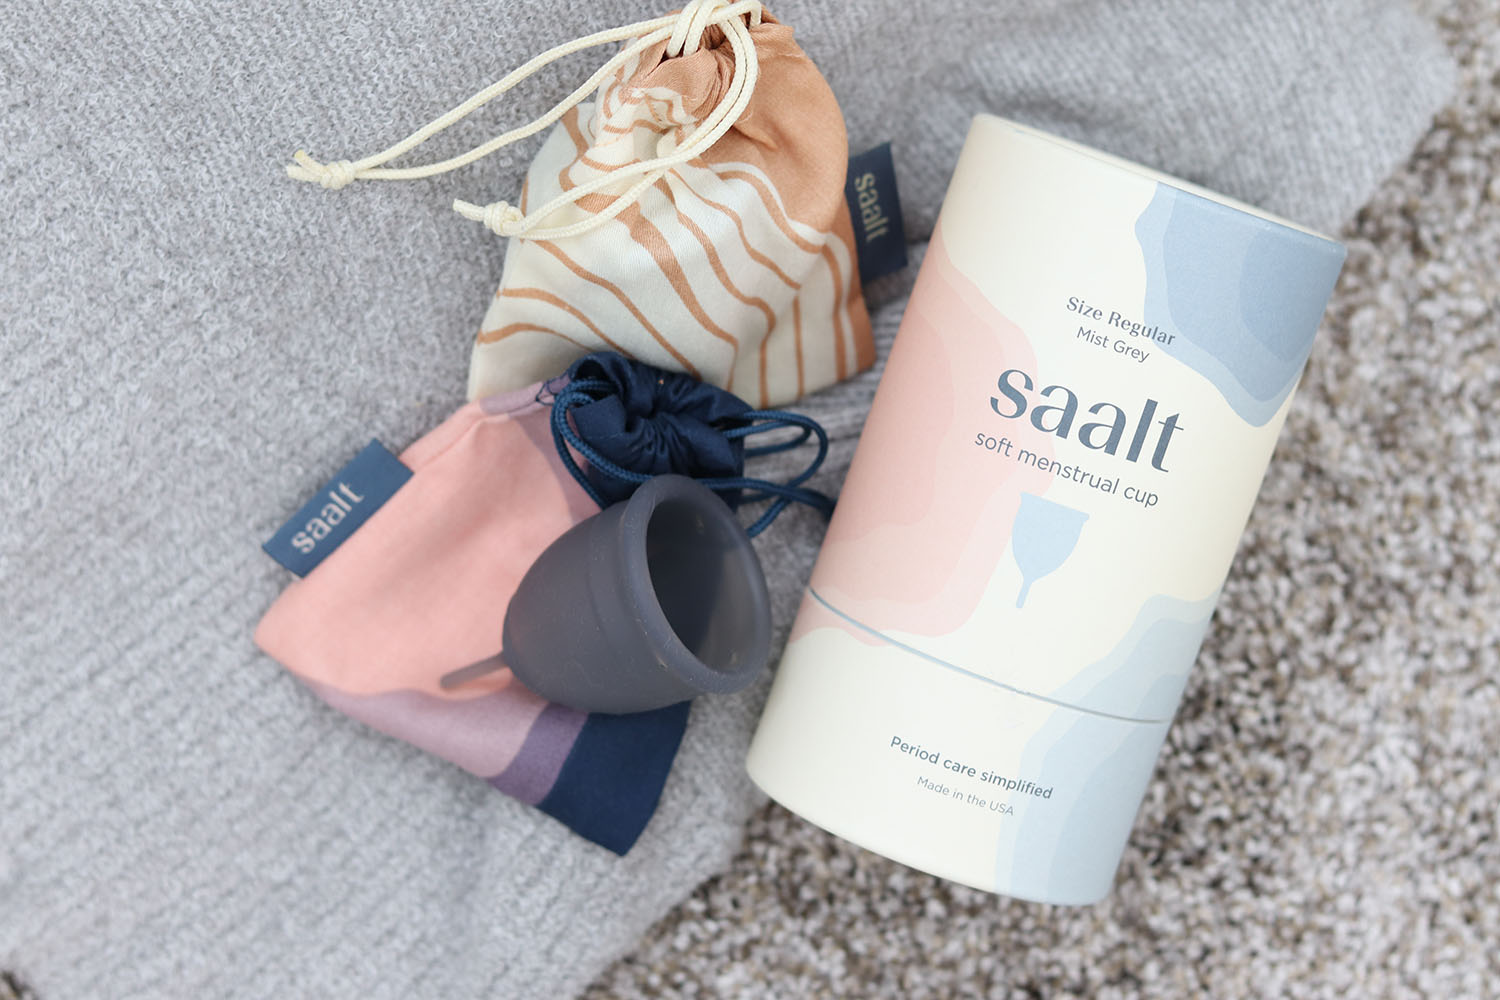 My Experience Using the Saalt Soft Menstrual Cup